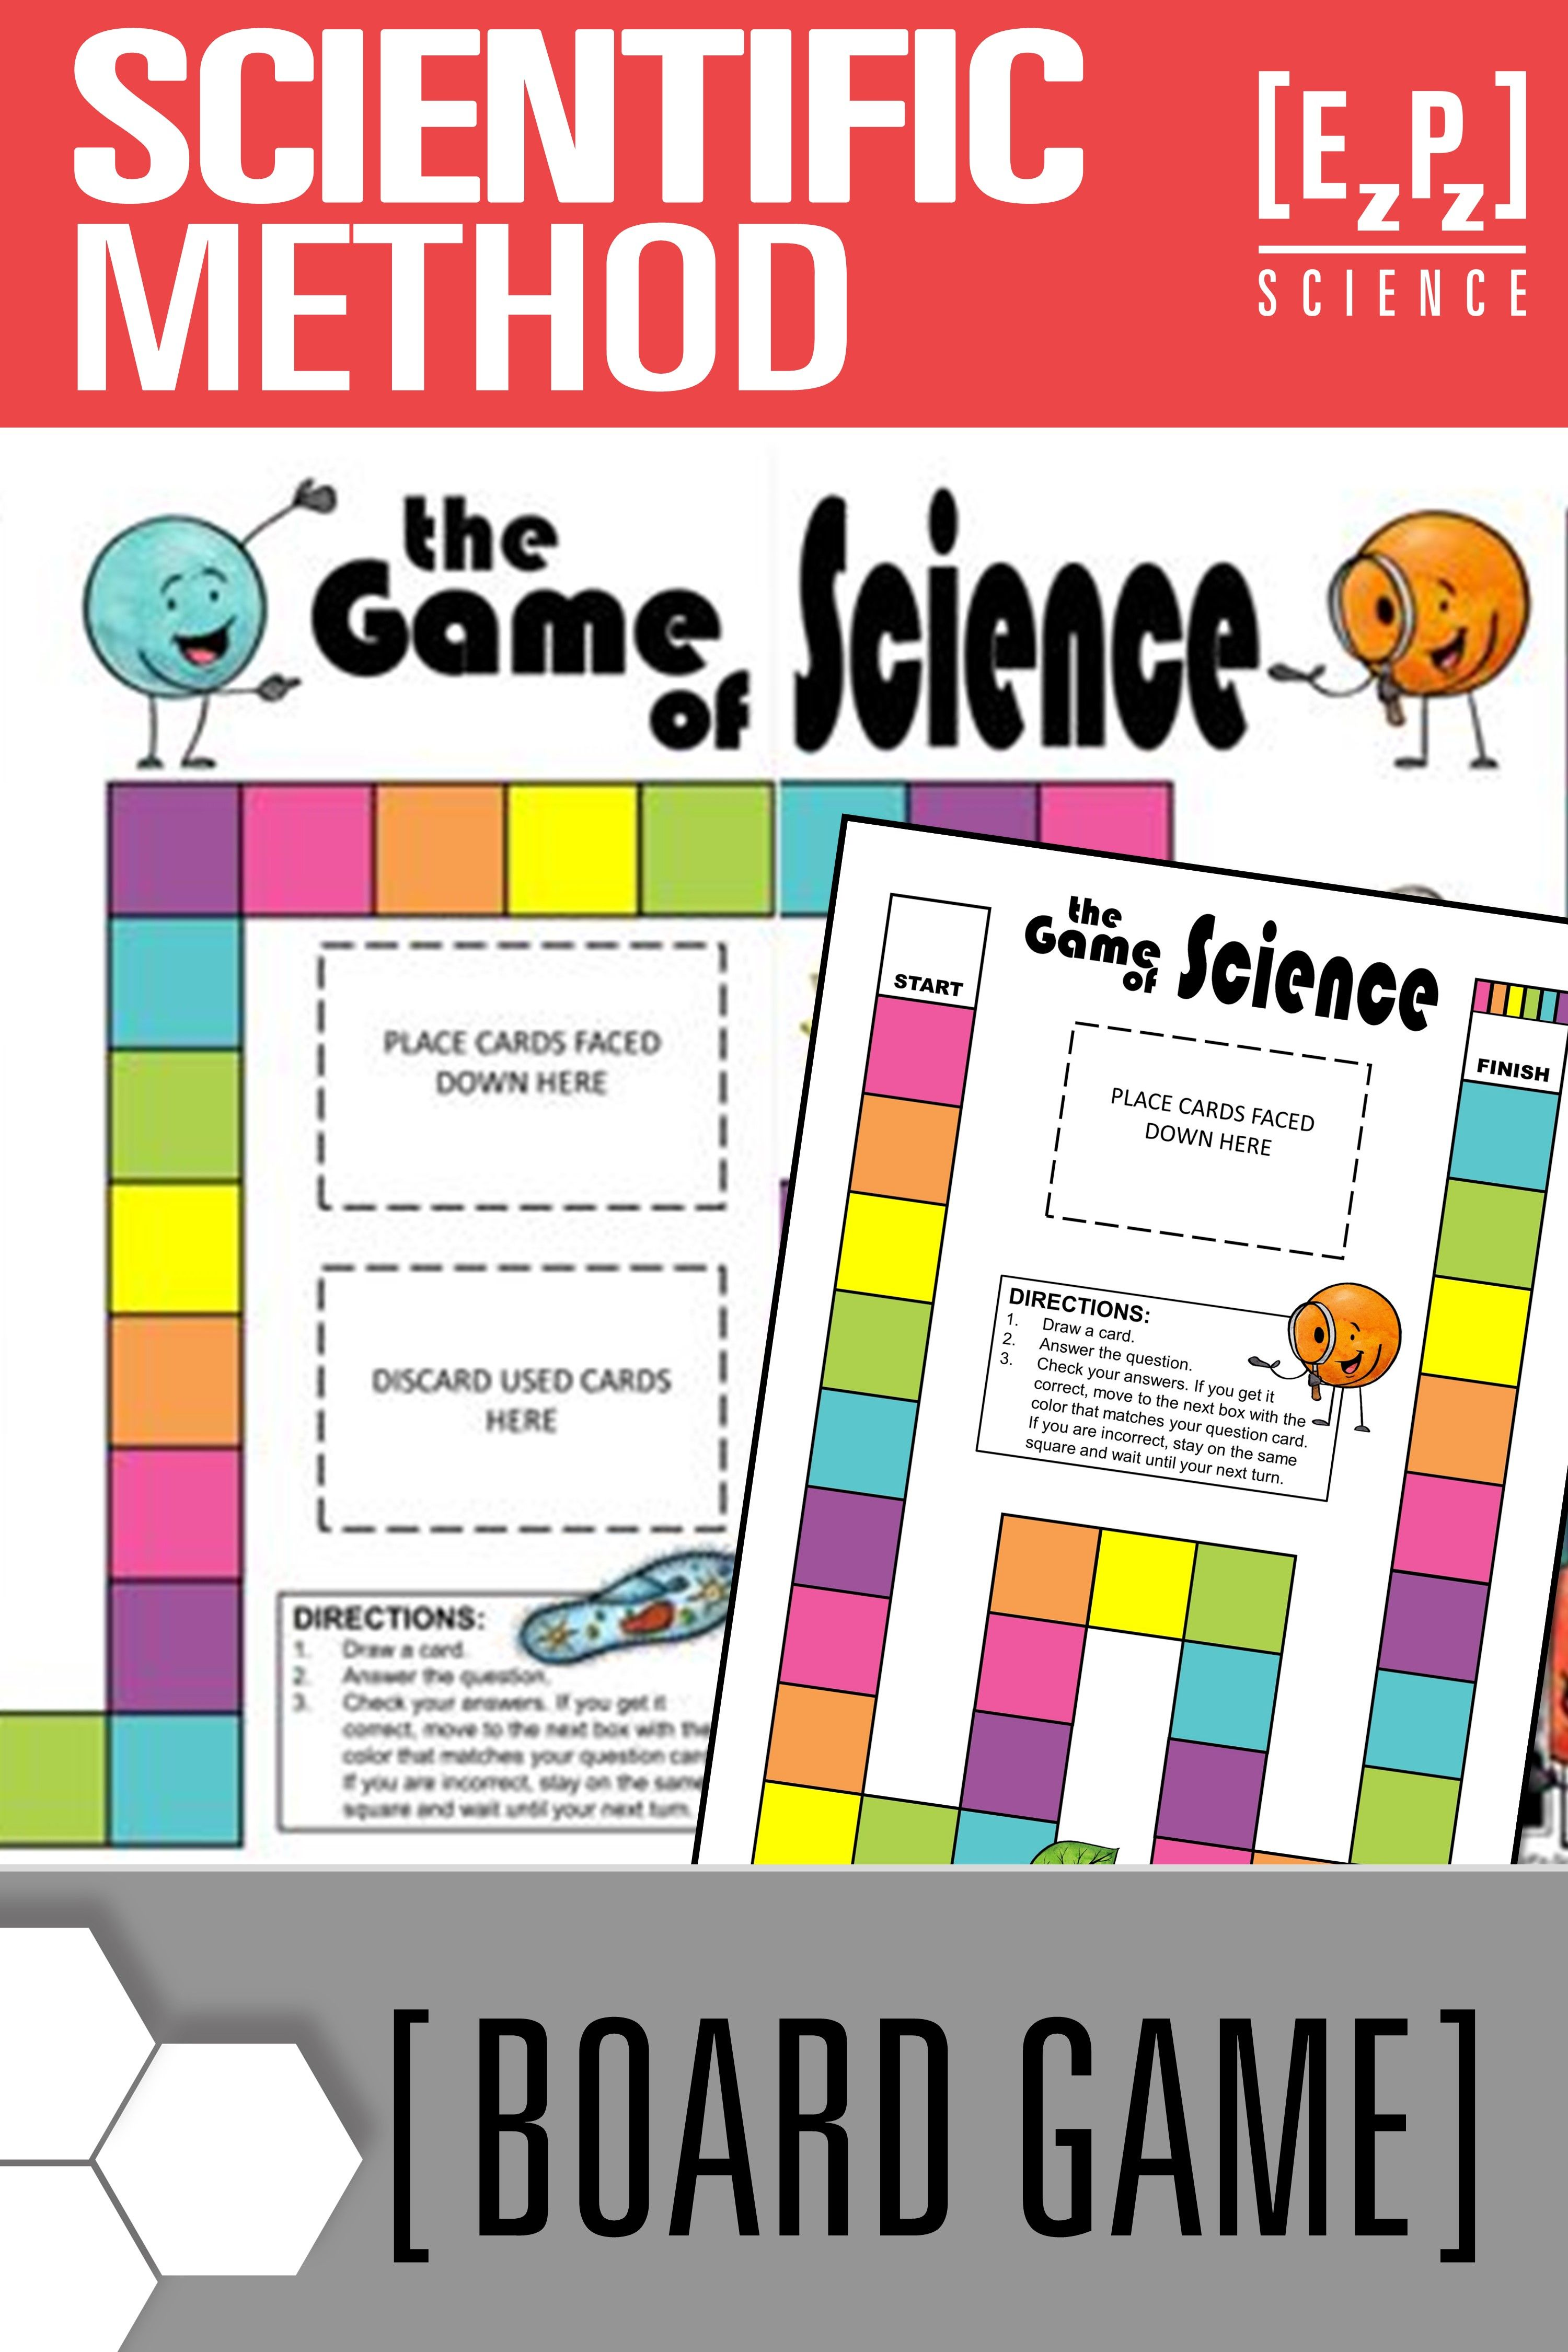 Scientific Method Science Board Game Review (With images